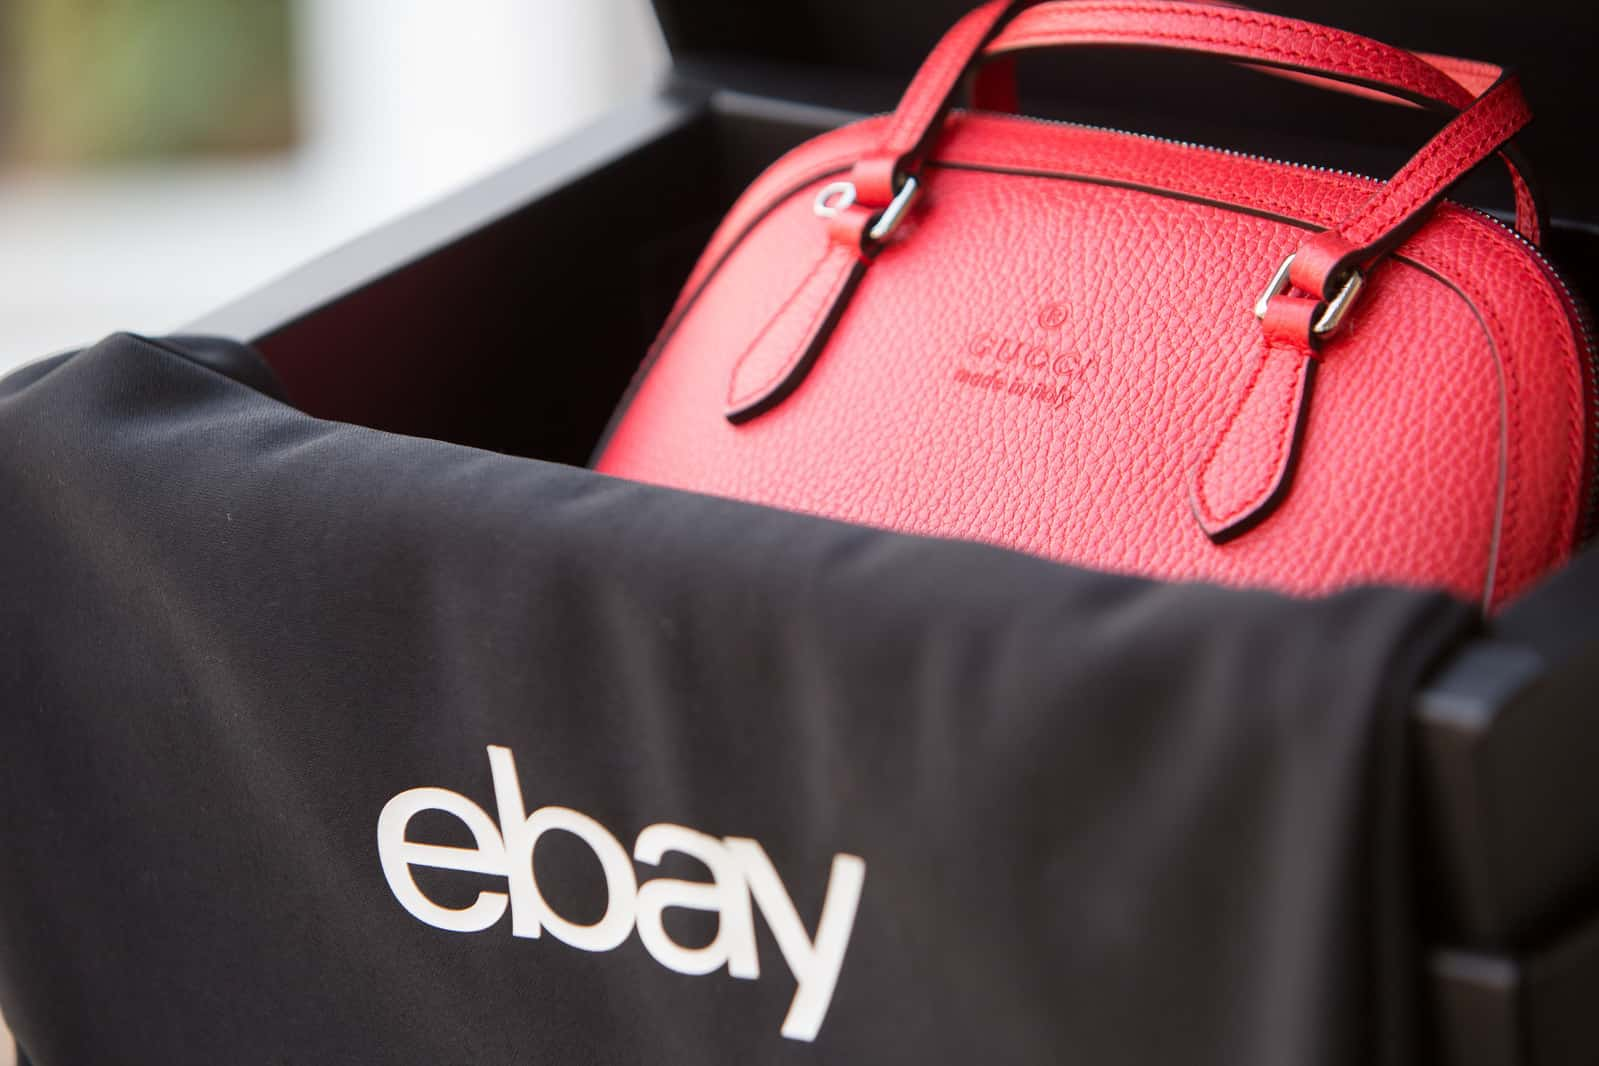 red handbag in an eBay package